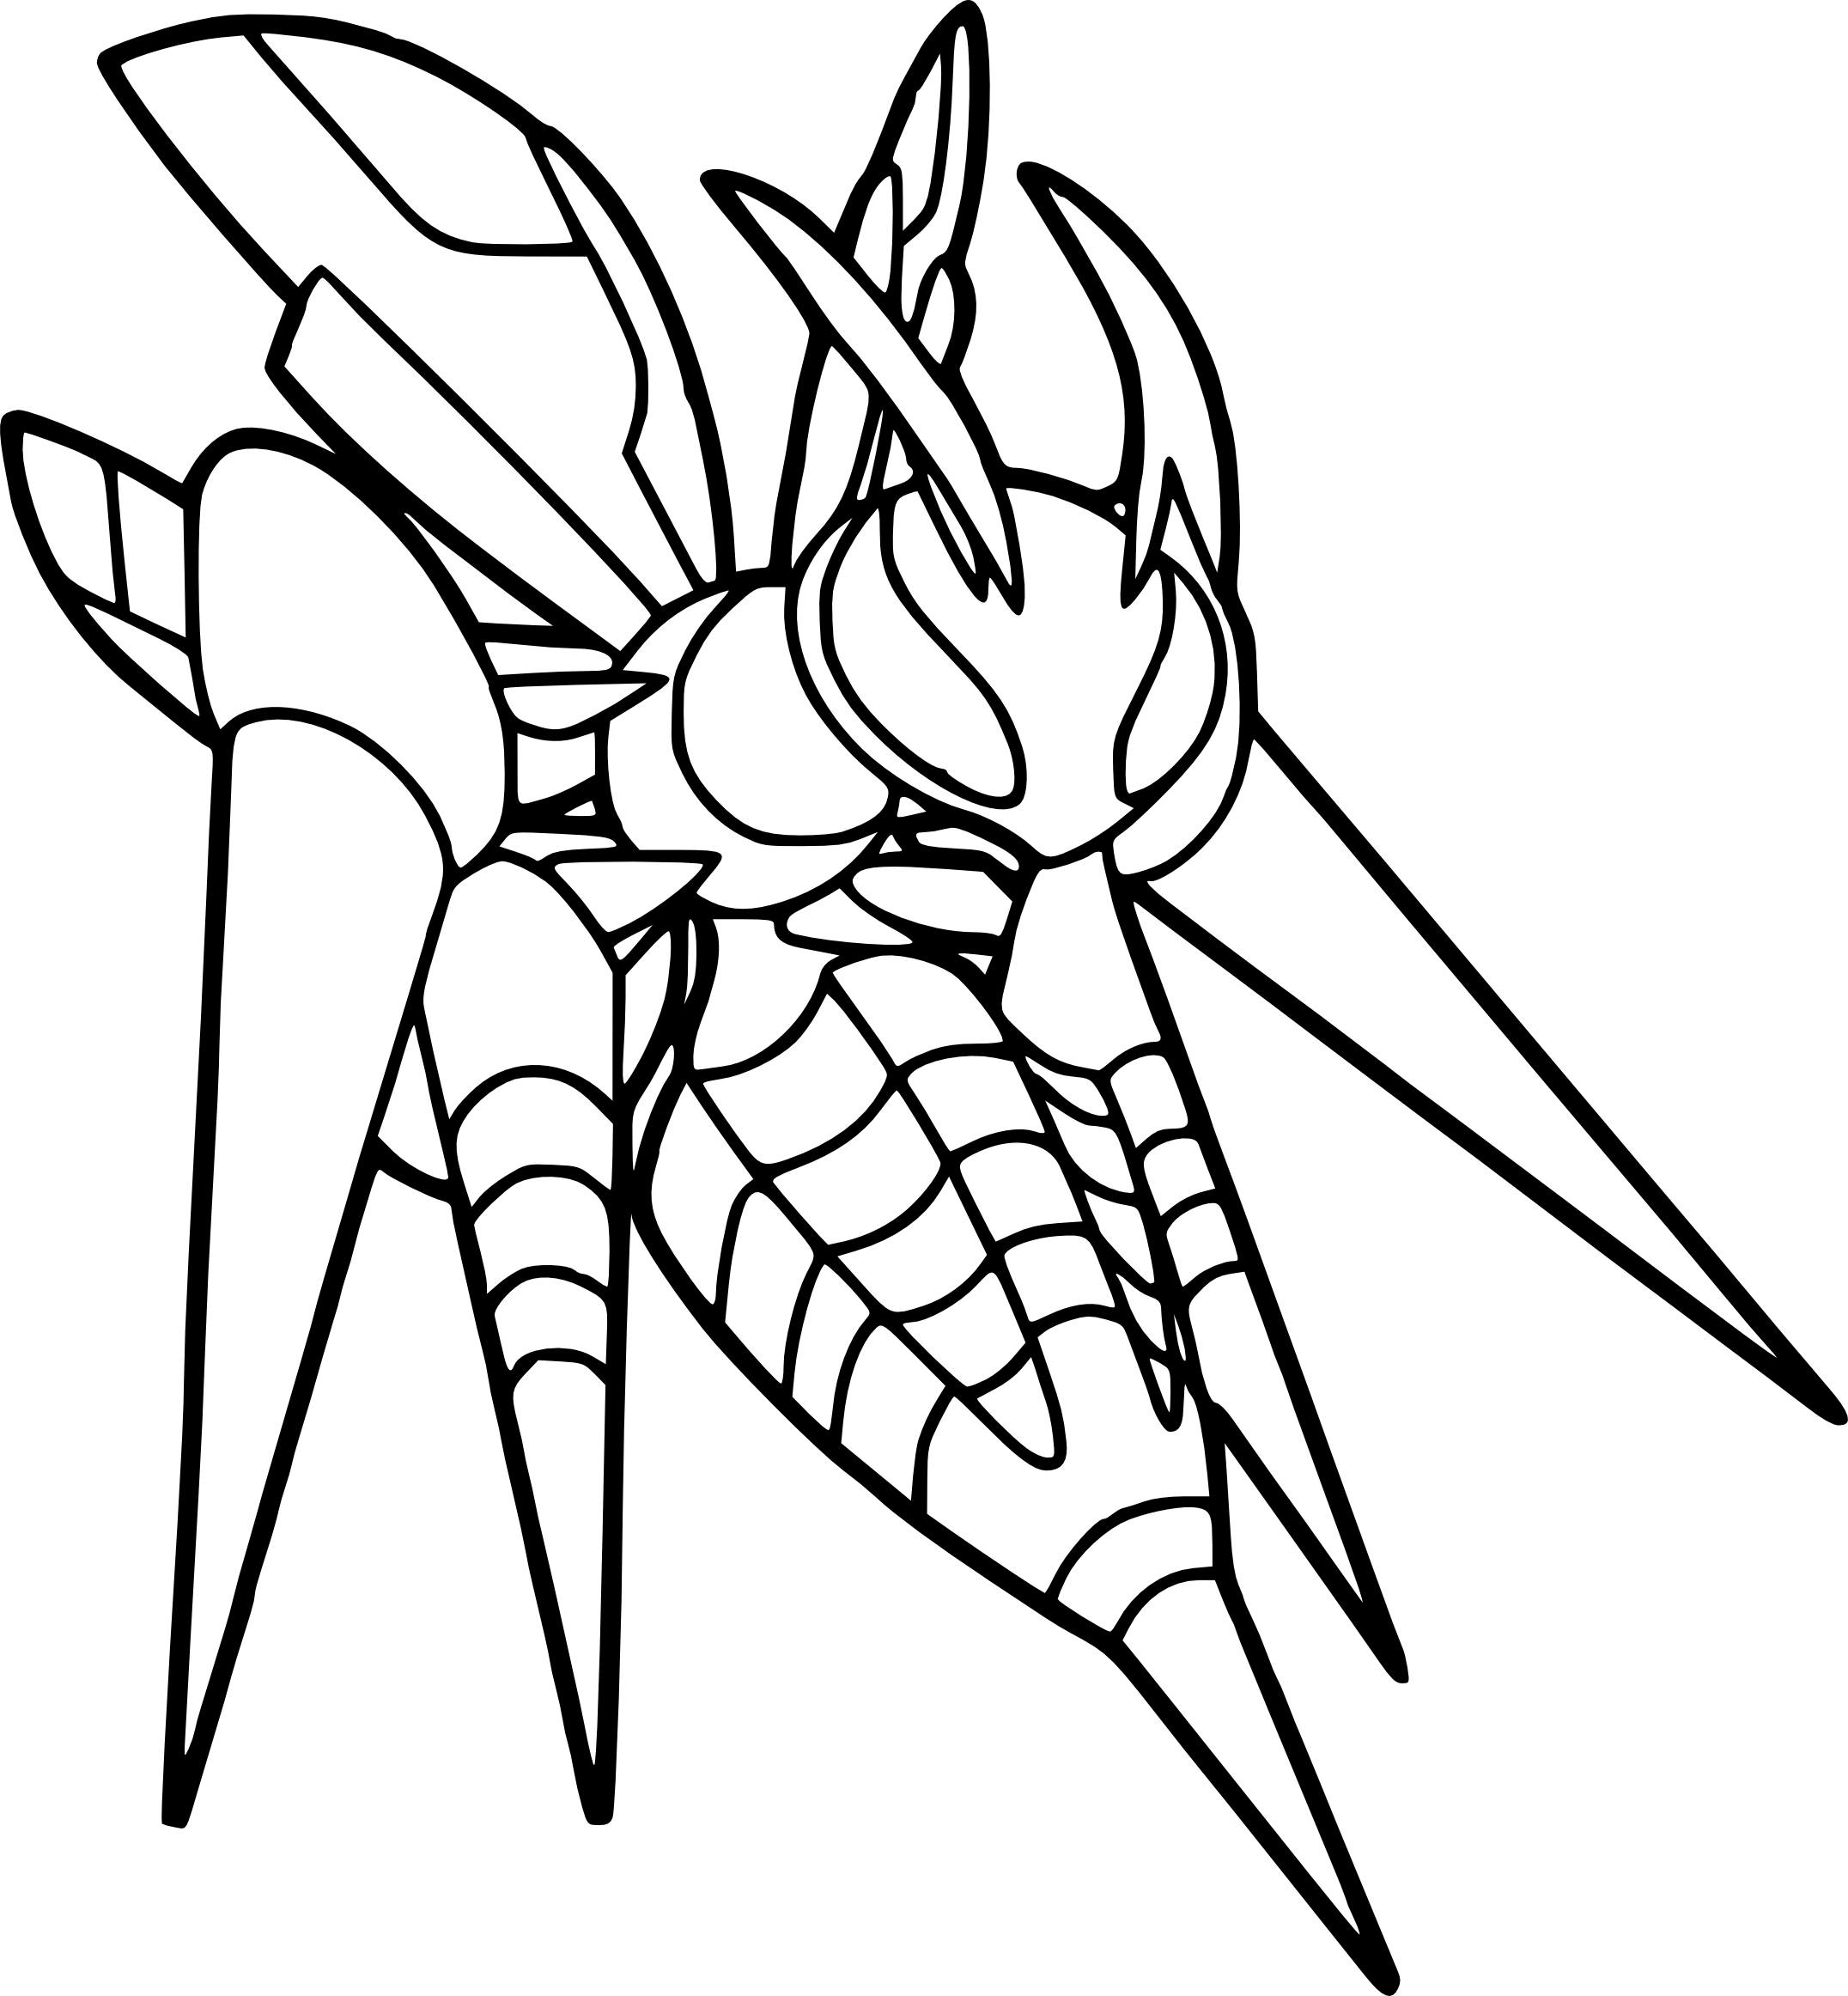 pokemon kingdra coloring pages mega pokemon coloring pages at getcoloringscom free kingdra pages pokemon coloring